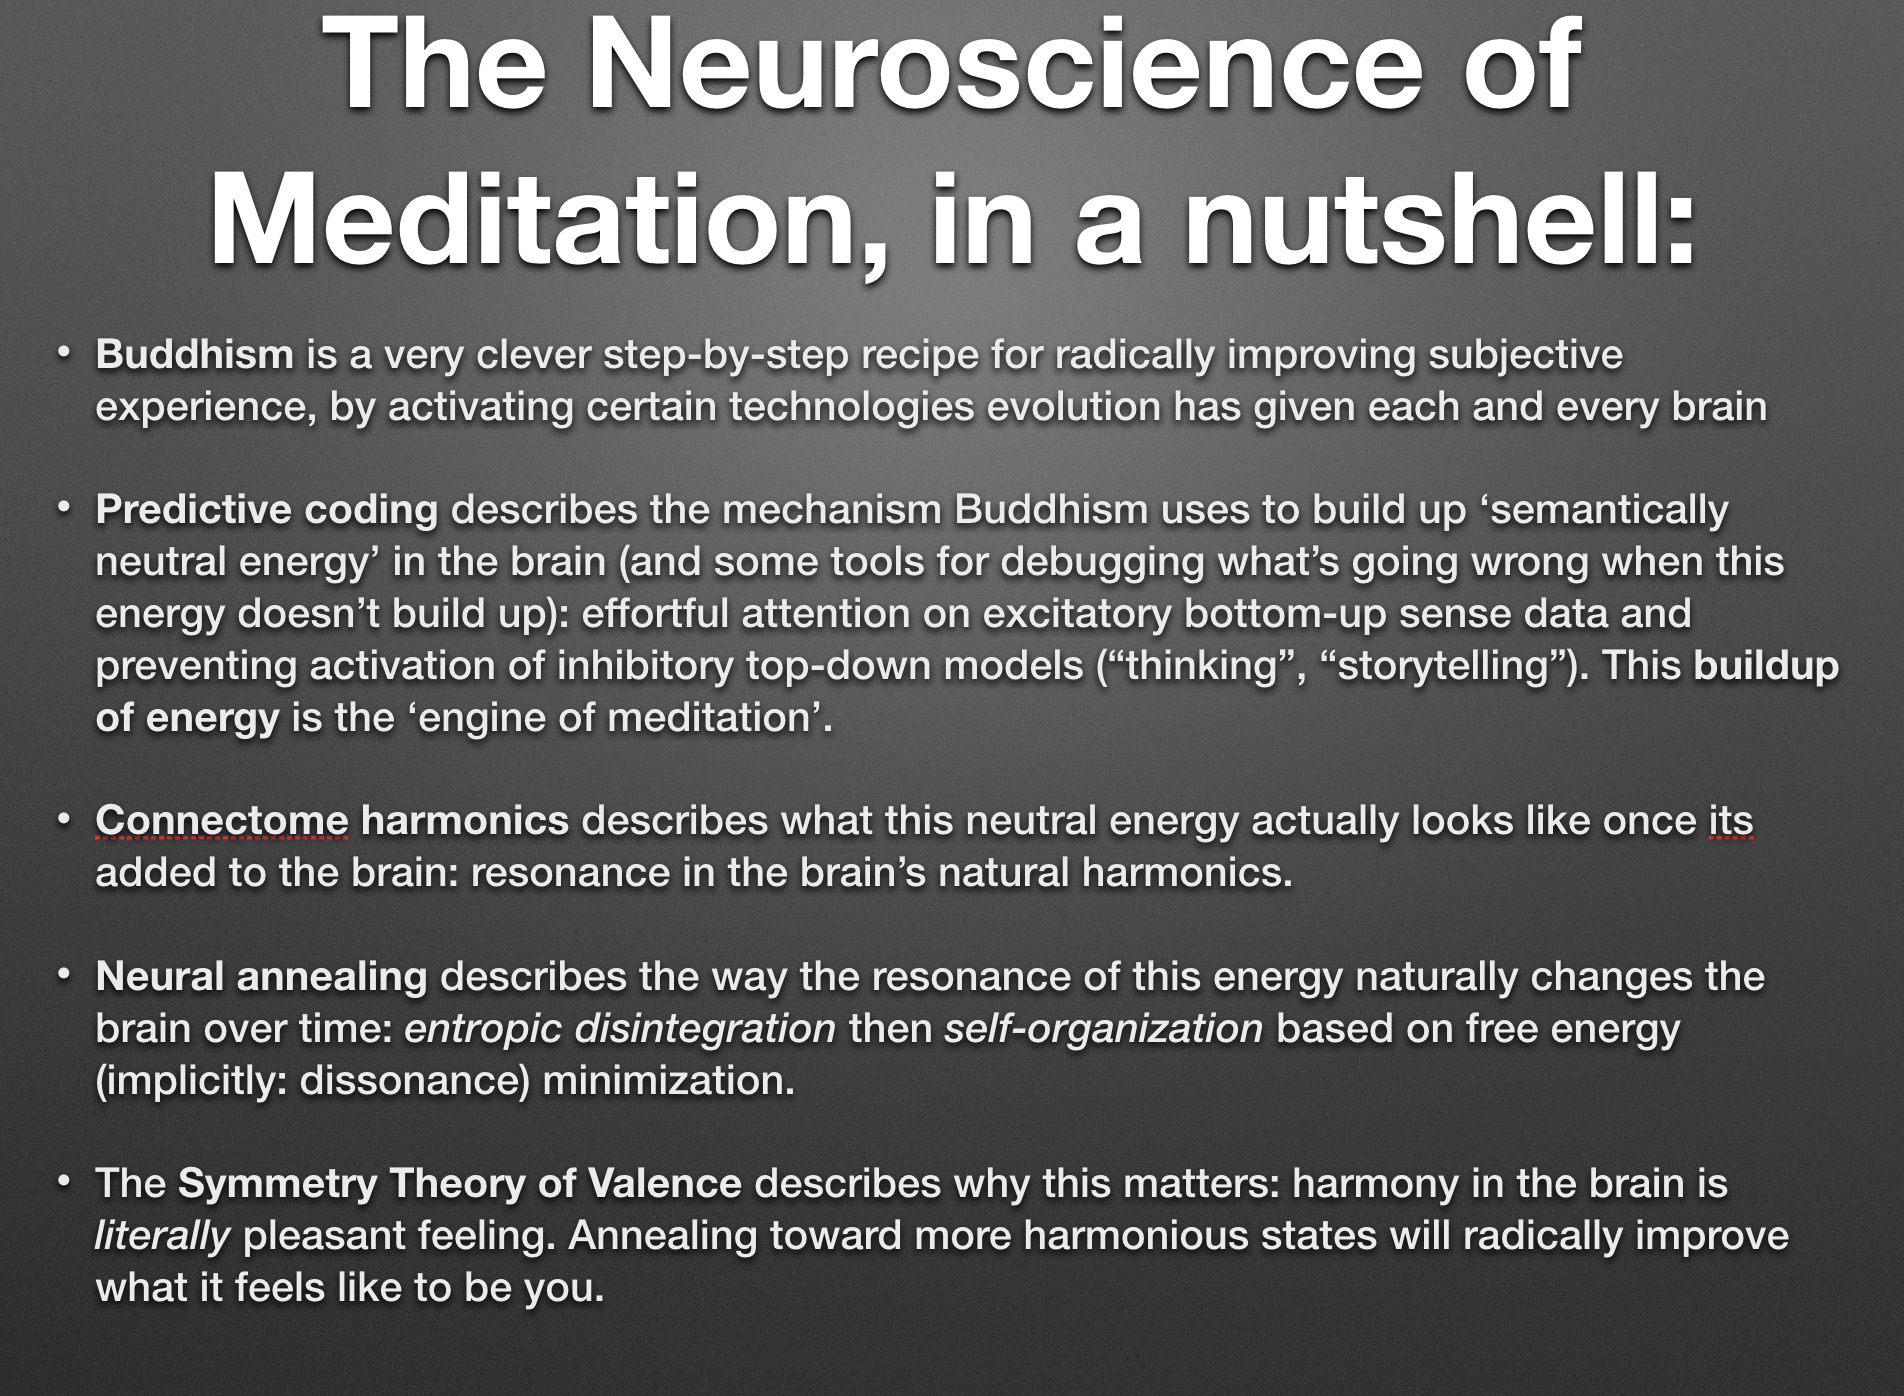 The Neuroscience of Meditation: Four Models | Opentheory net